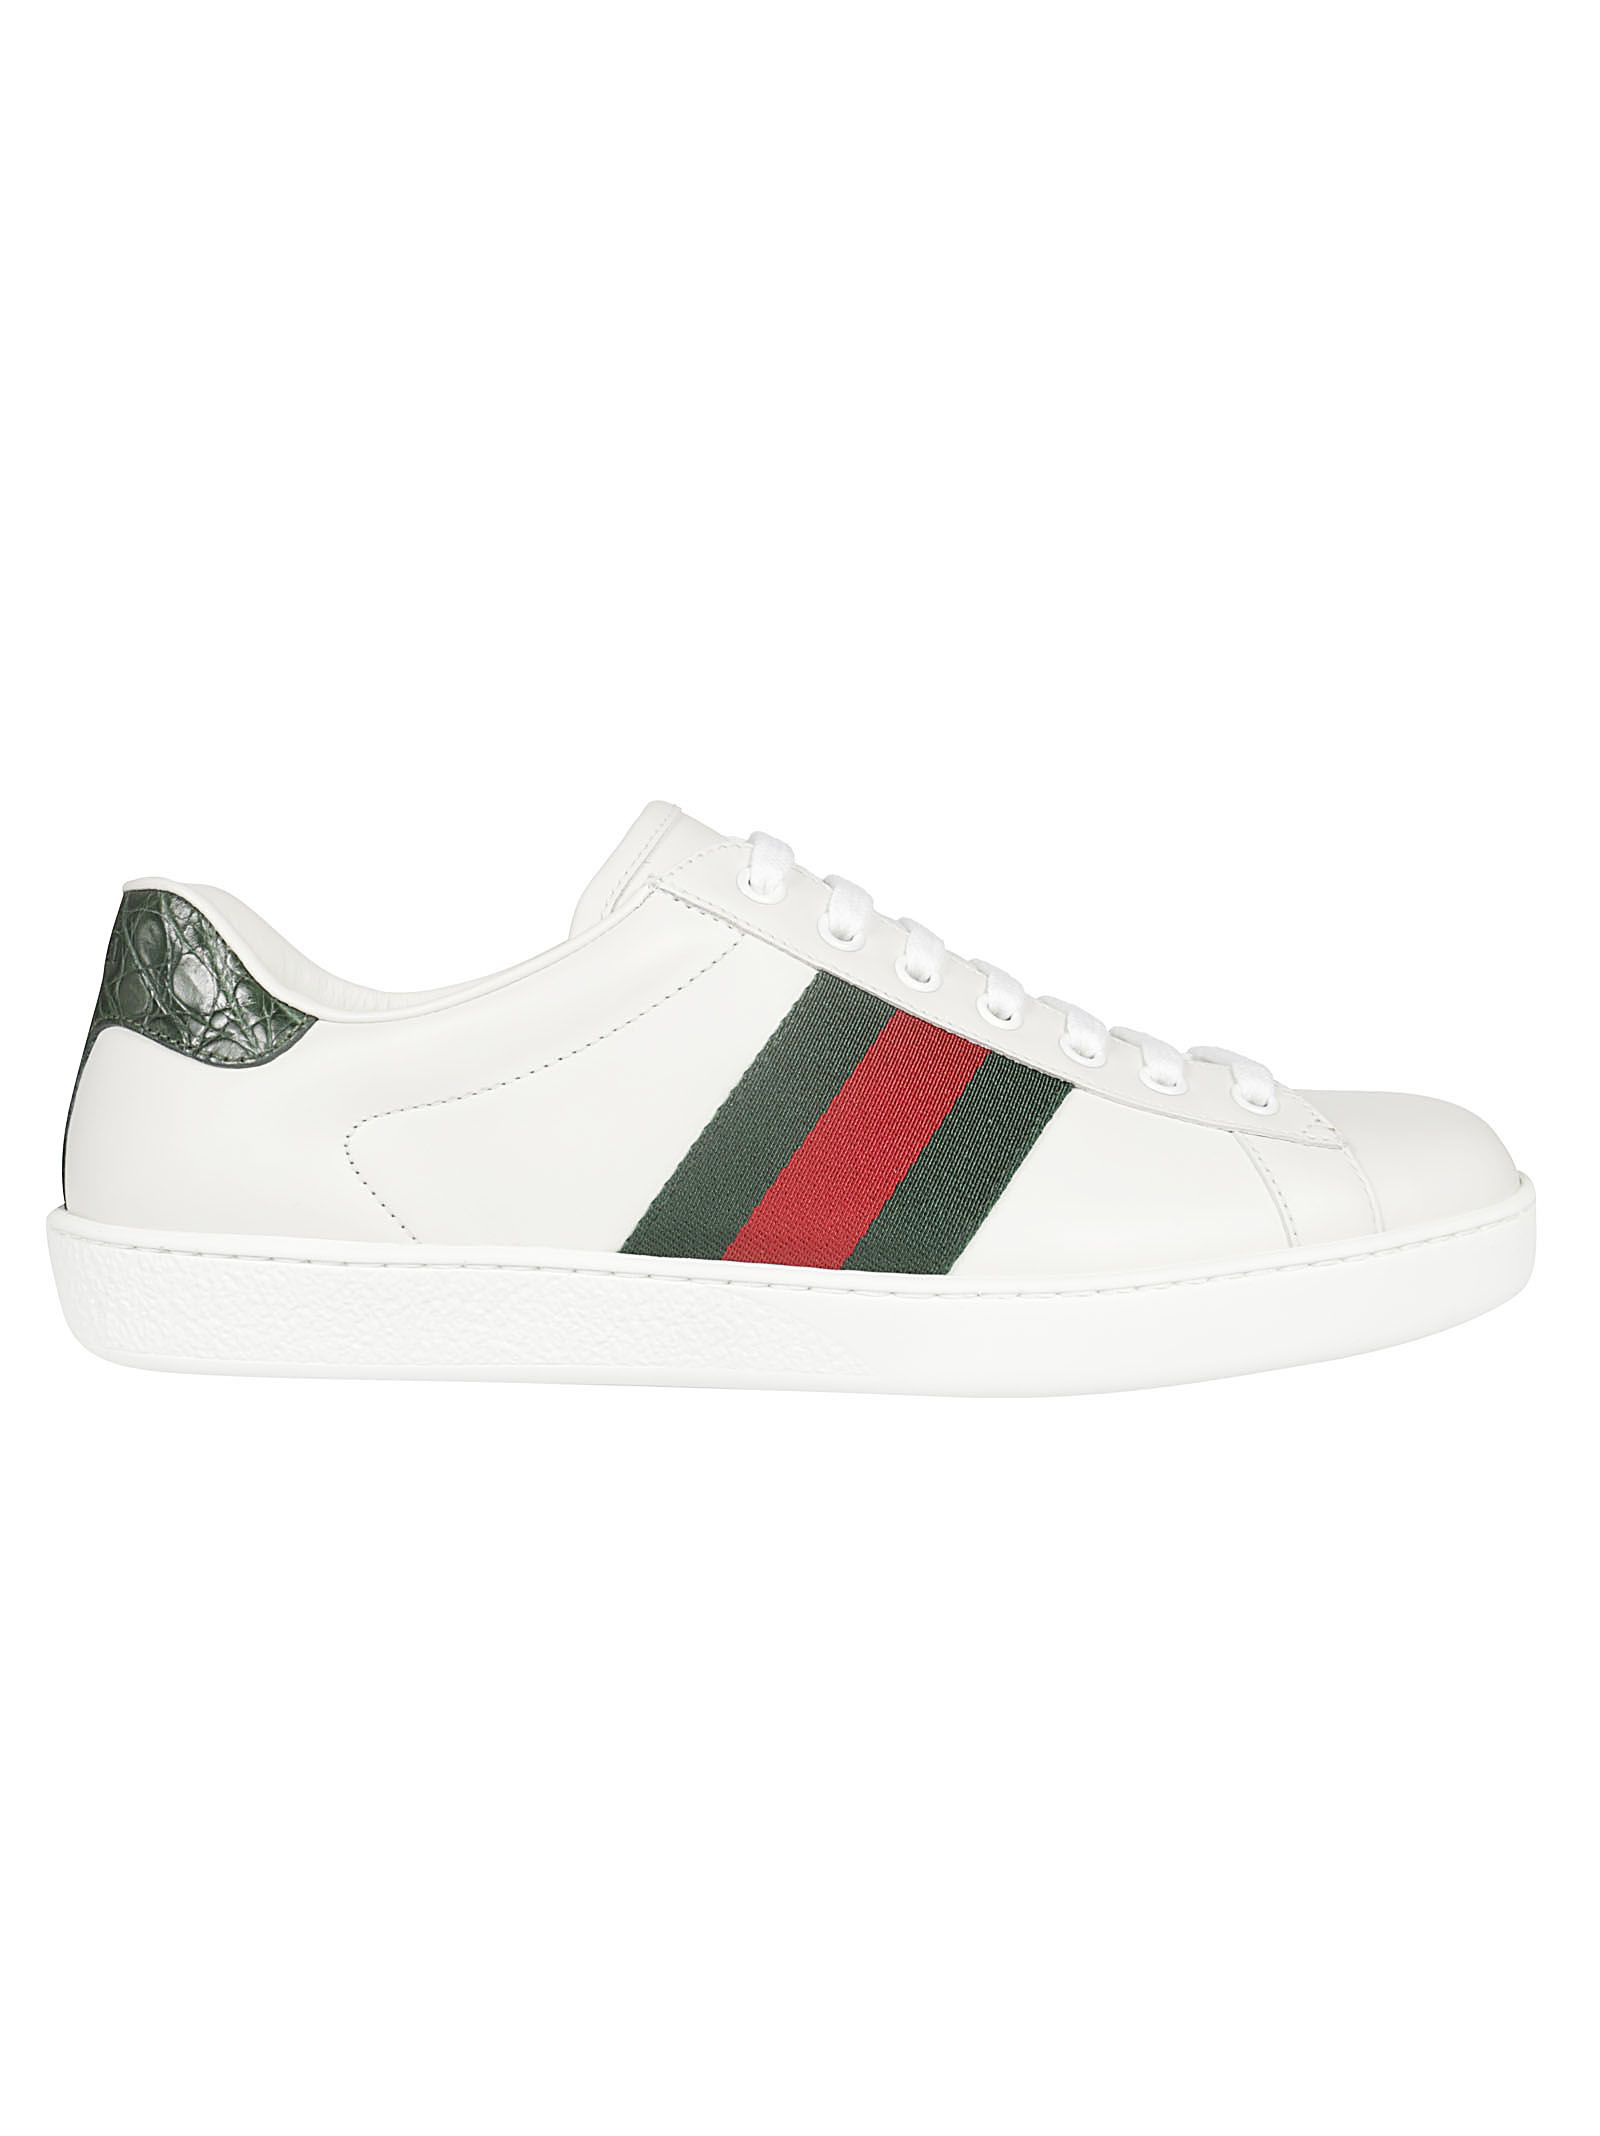 1e4182a31e0c Gucci Men s New Ace Leather Low-Top Sneakers